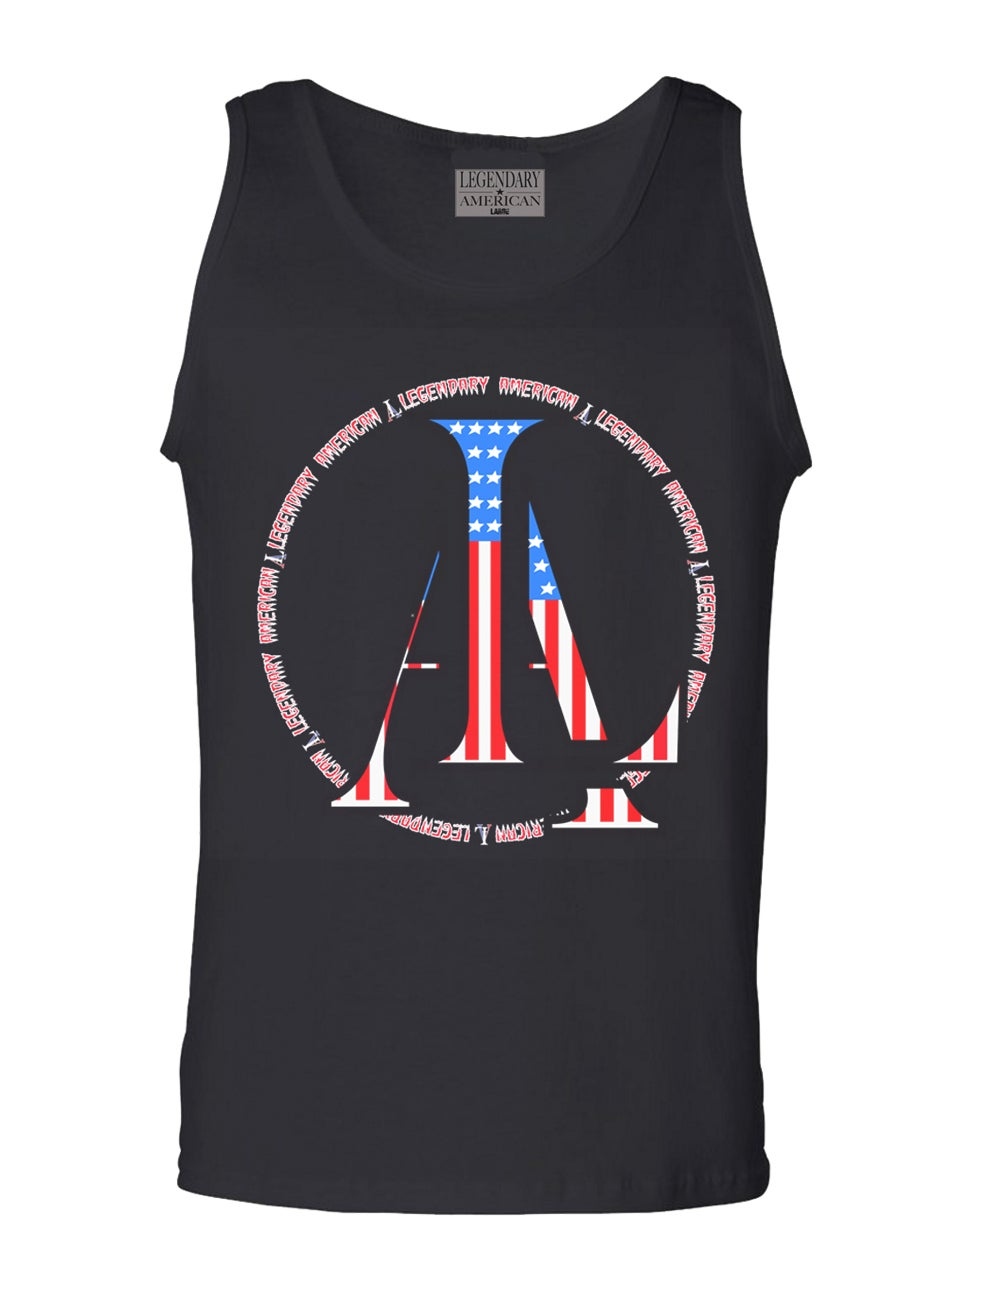 Image of Legendary American LA logo tank top